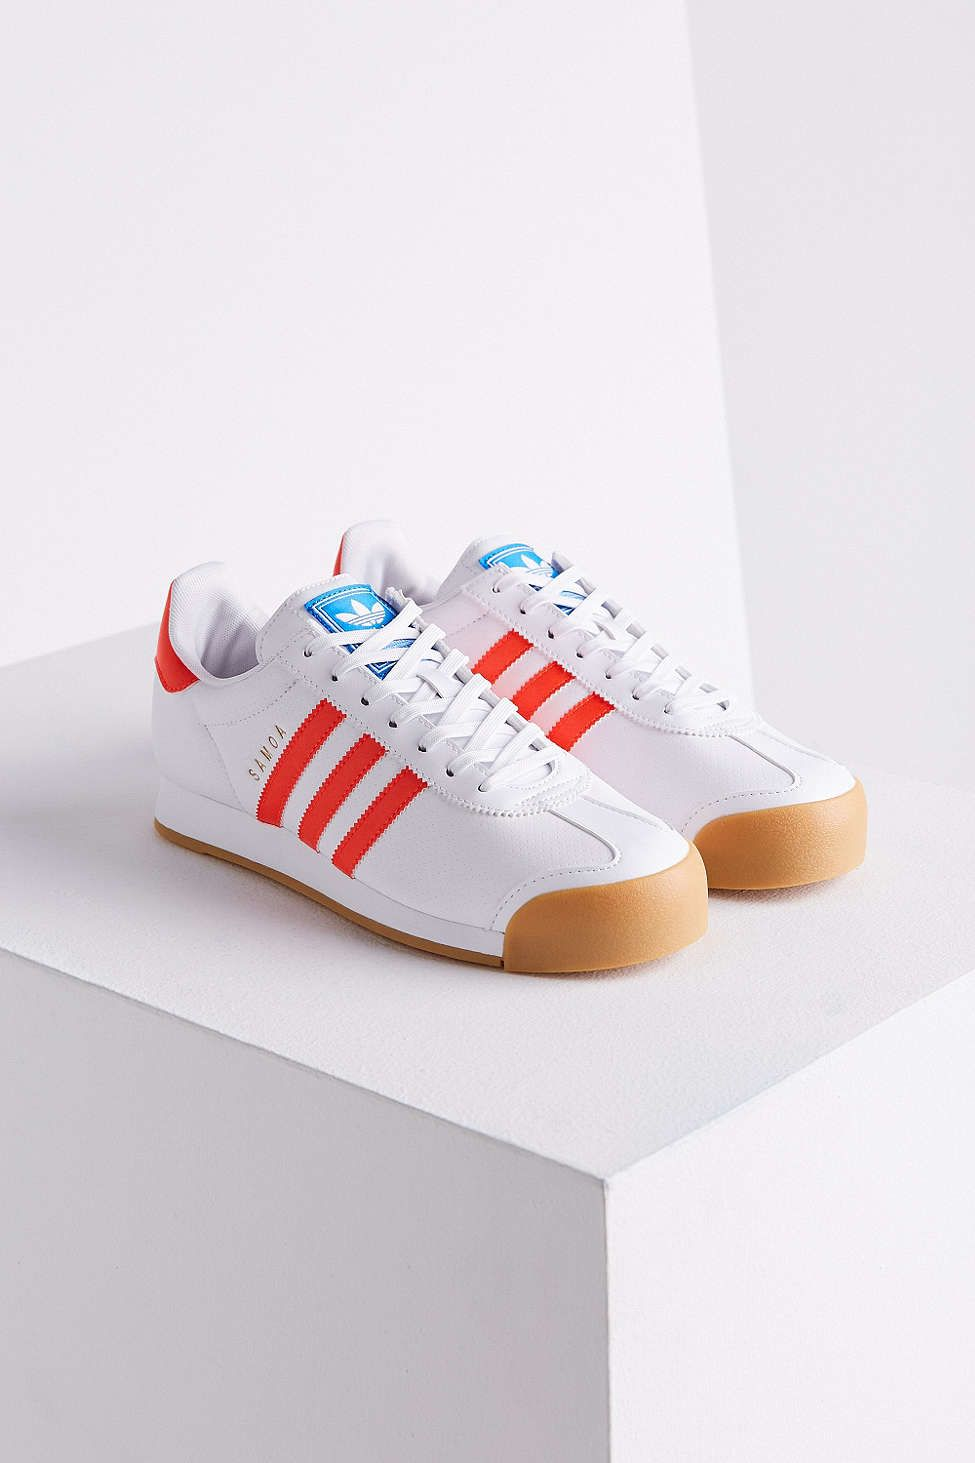 dc513fe0 adidas Samoa Perforated Gum Sole Sneaker | shoes | Zapatos, Tenis ...